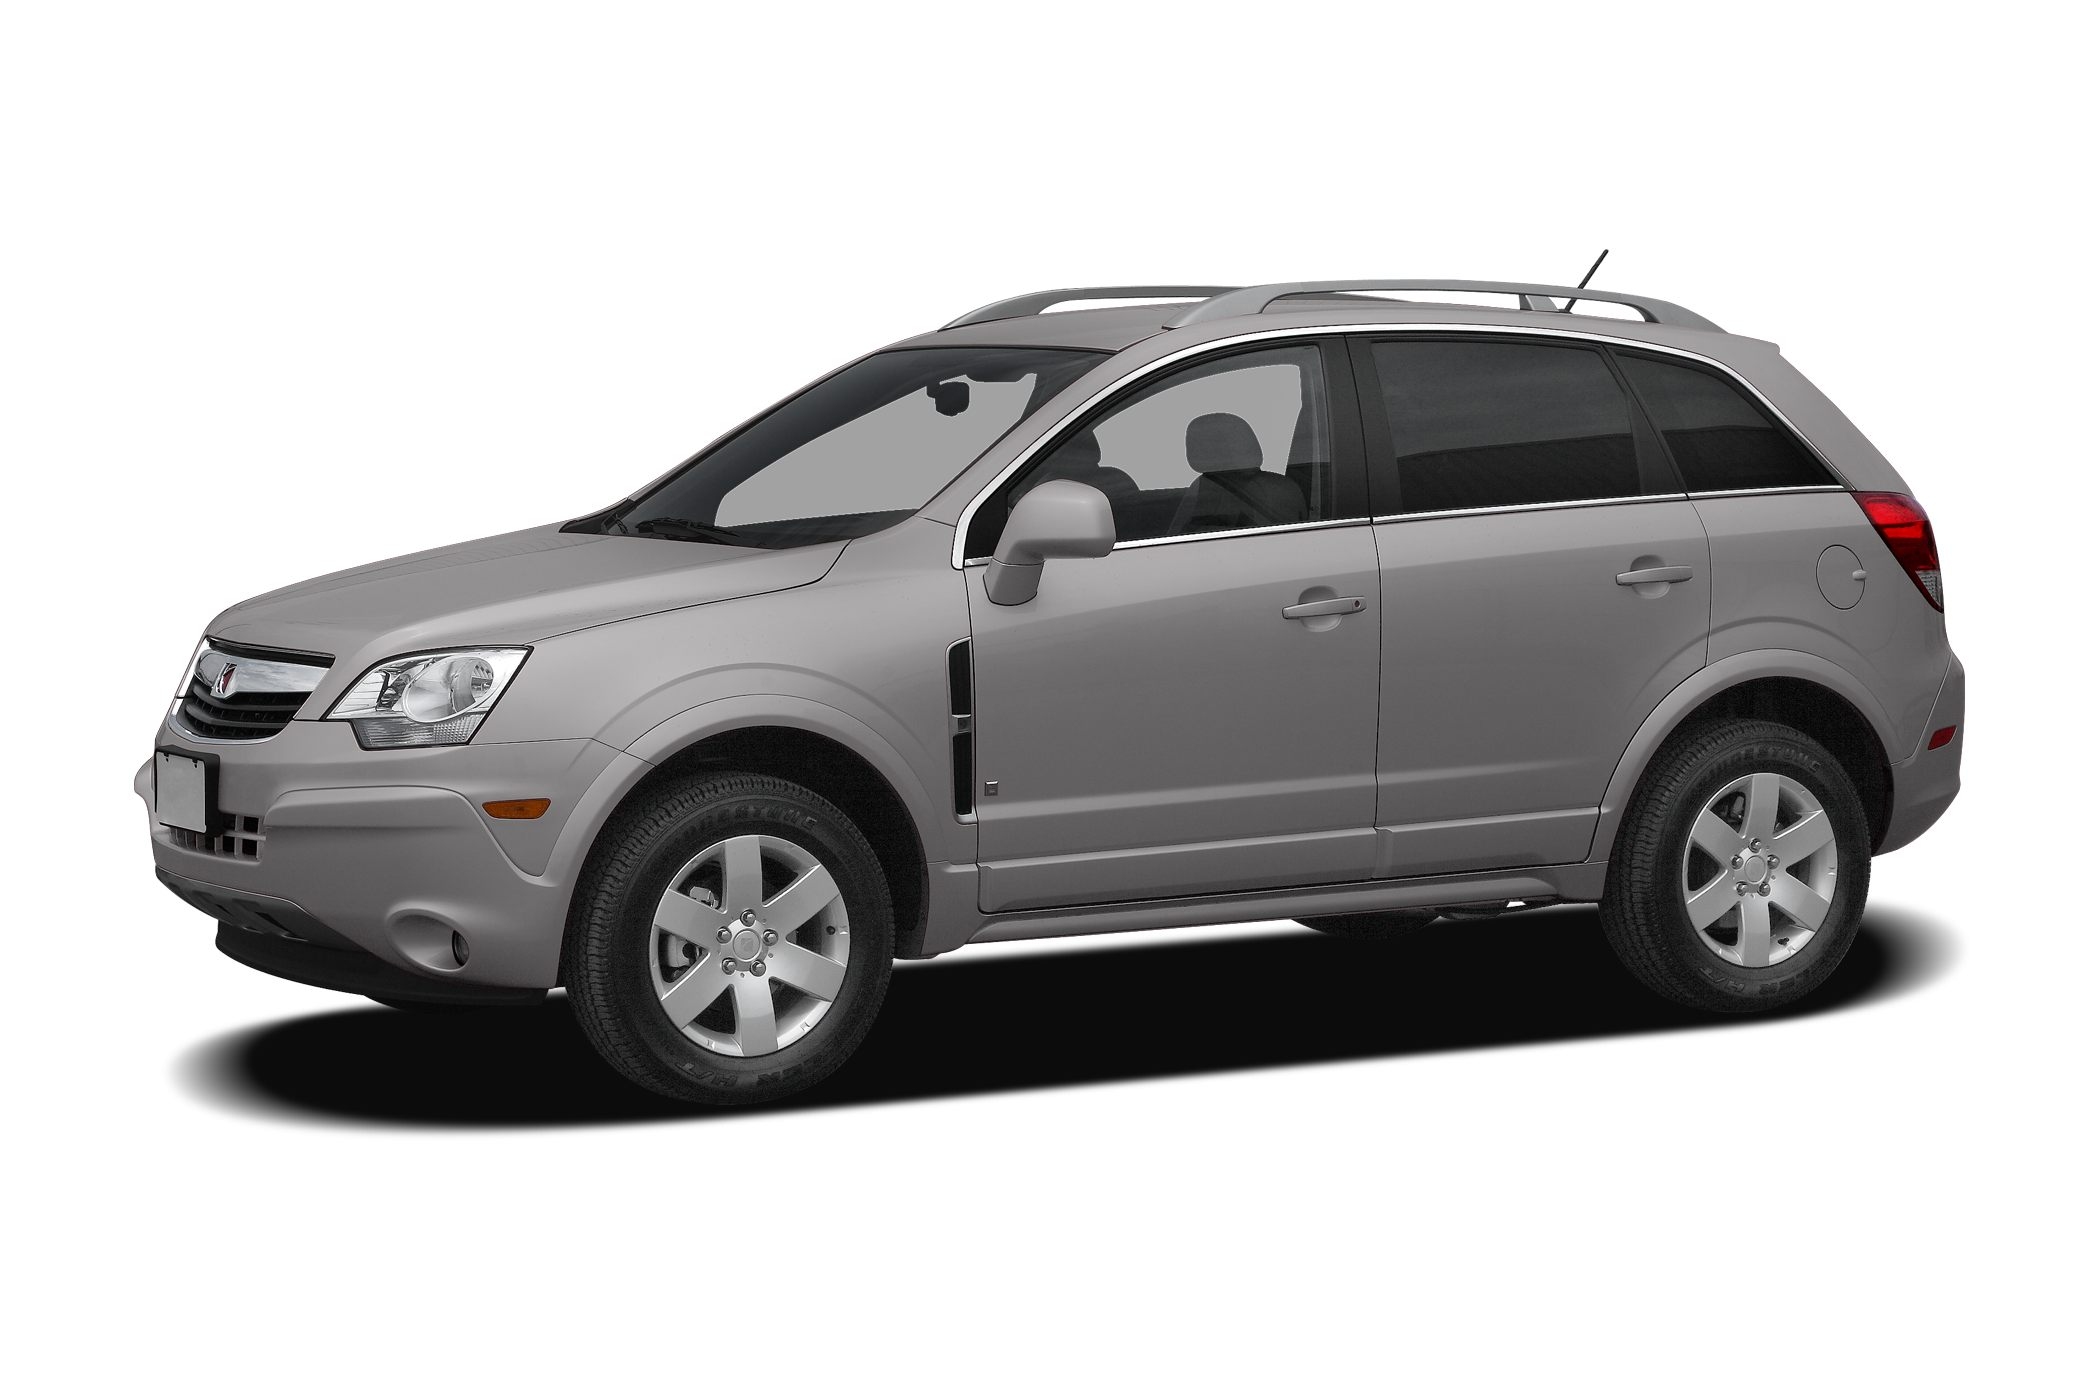 2008 Saturn Vue XE SUV for sale in Midland for $8,999 with 100,664 miles